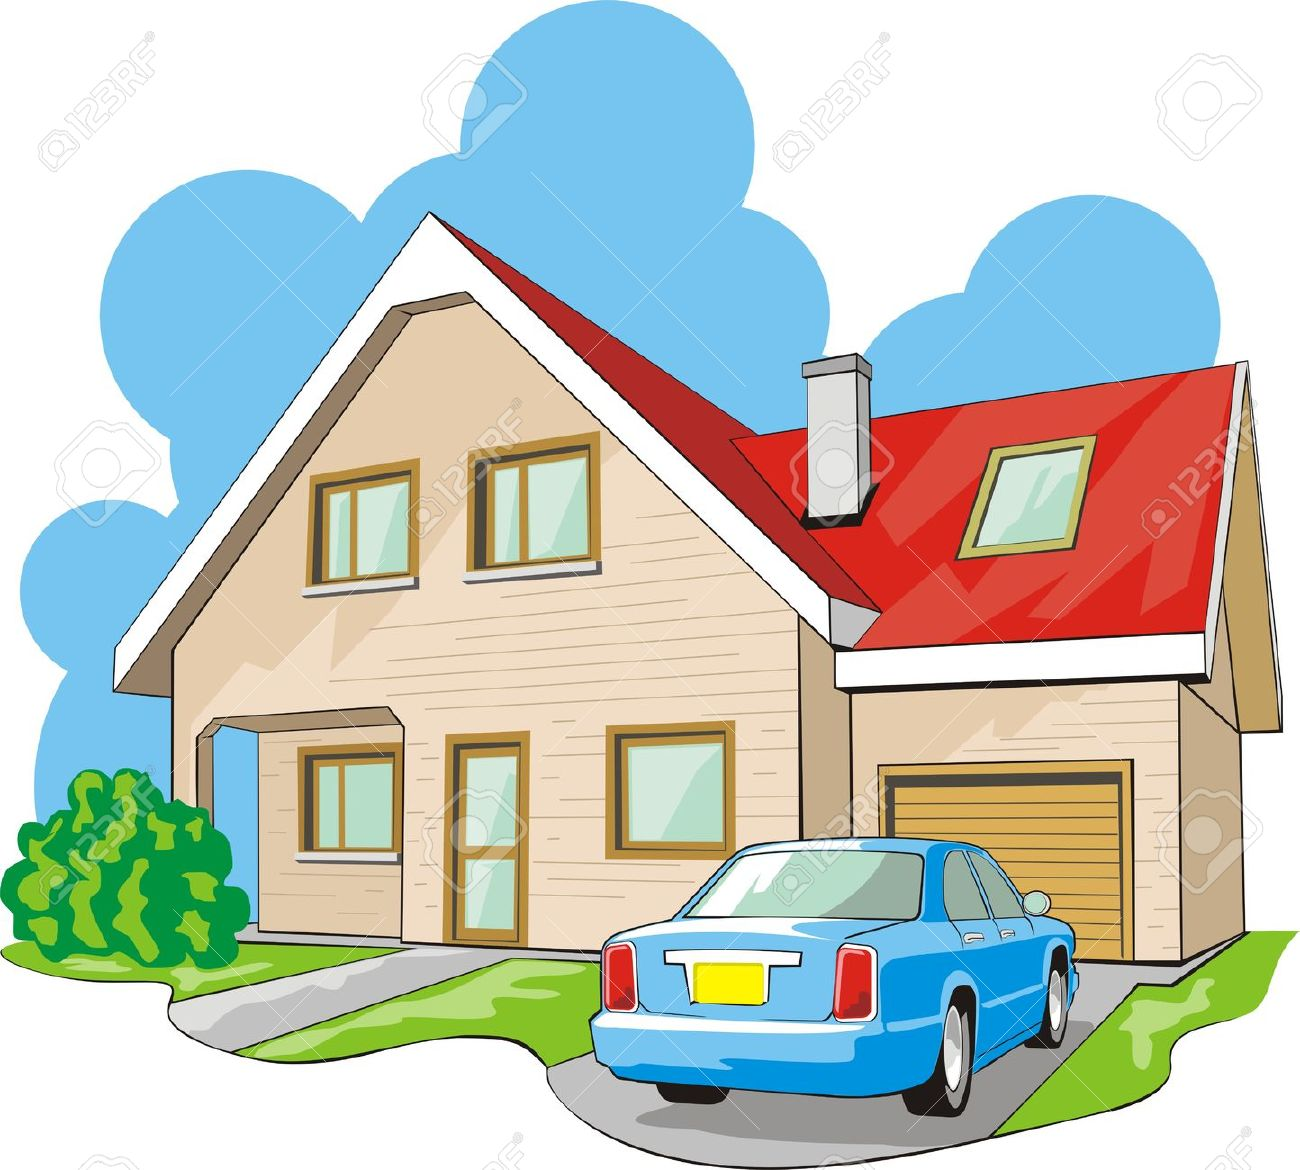 clipart garage dwelling property transfer divorce story during clipground illustration clip cliparts law